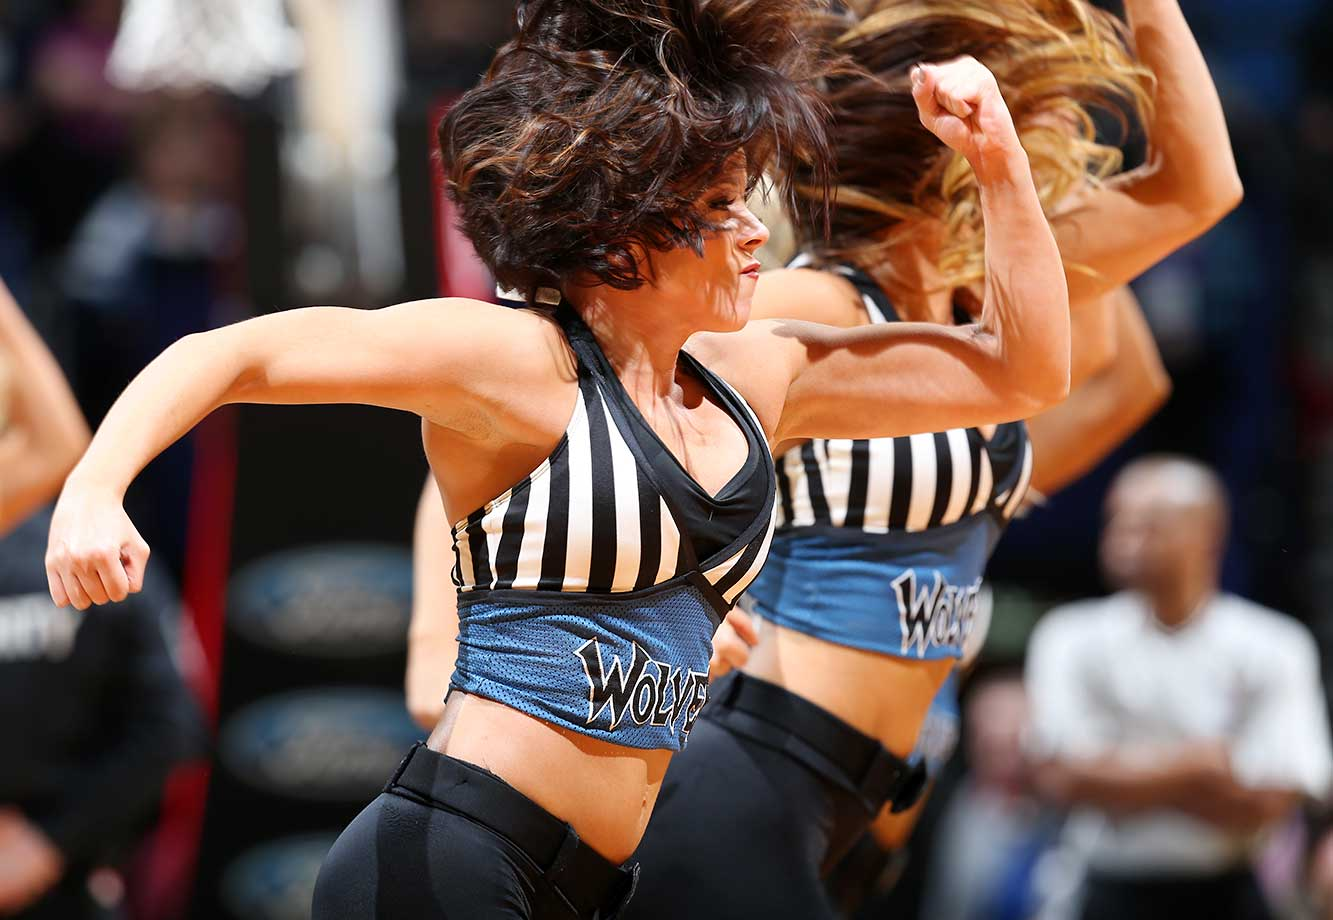 Dancers perform during the game between the Oklahoma City Thunder and Minnesota Timberwolves at Target Center in Minneapolis, Minn.